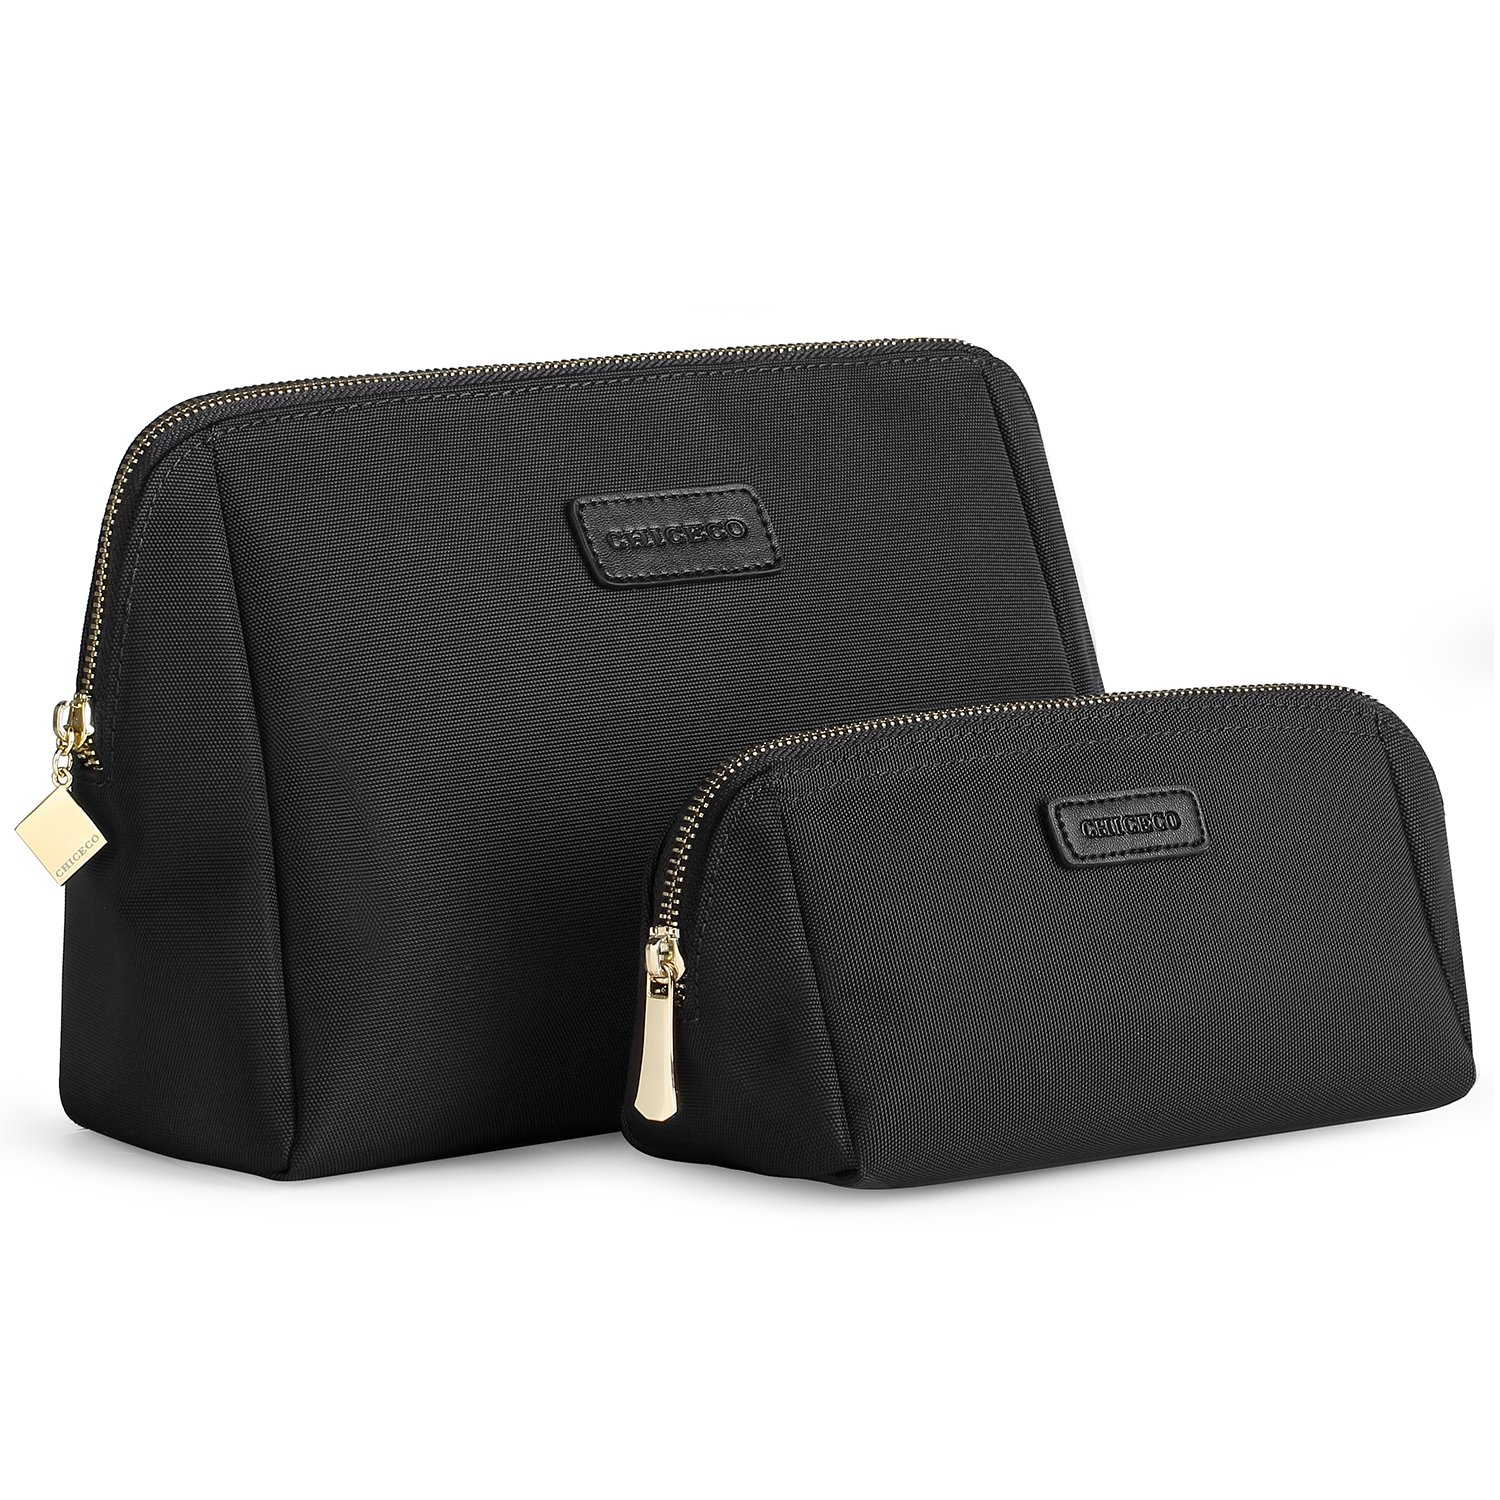 CHICECO Handy Cosmetic Pouch Clutch Makeup Bag Black Small Large